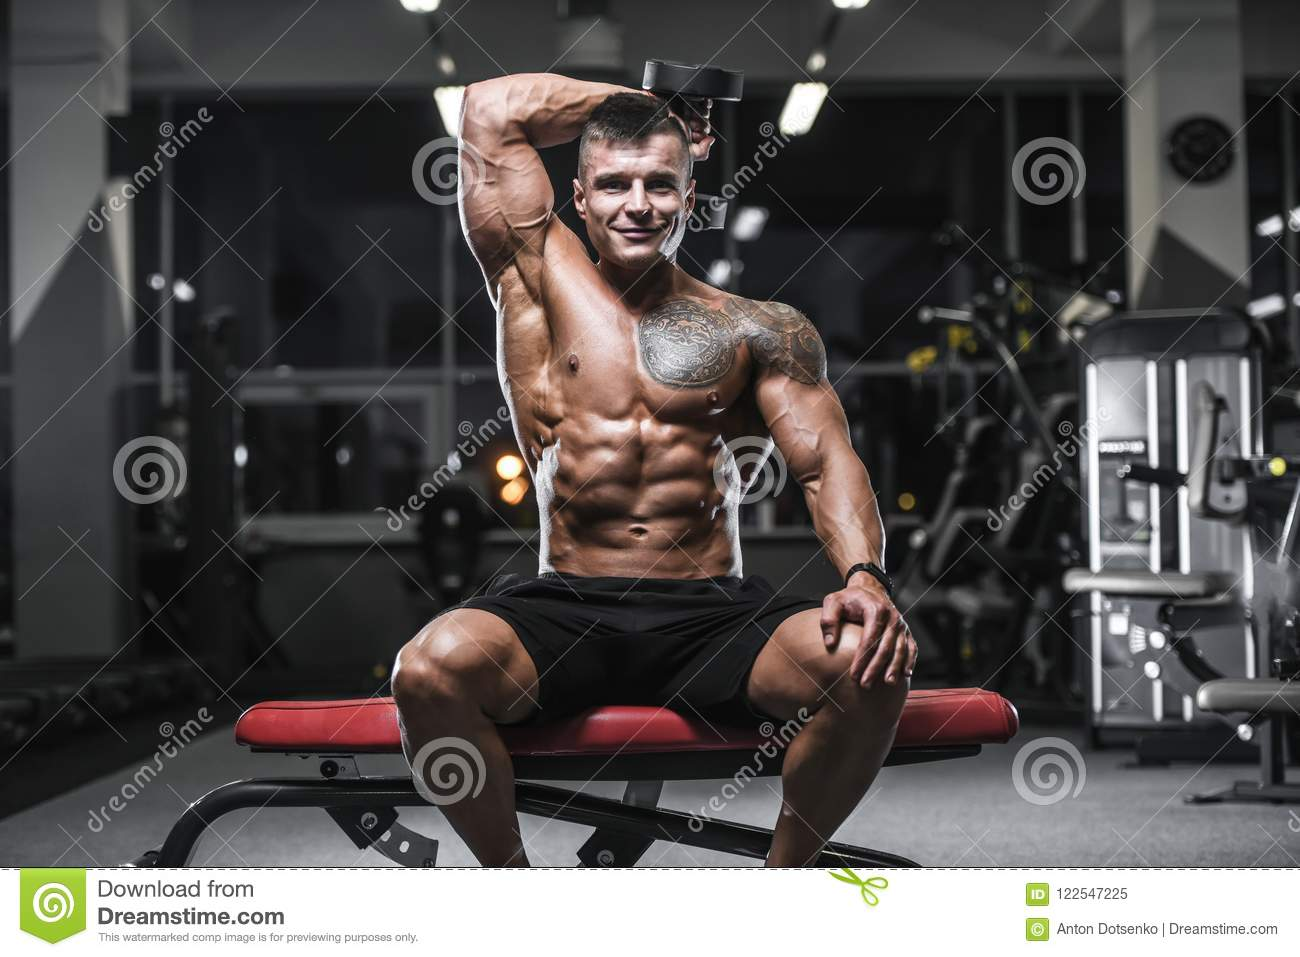 893e2173113 Handsome strong bodybuilder athletic man pumping up muscles workout  bodybuilding concept background - muscular bodybuilder handsome man doing  exercises in ...